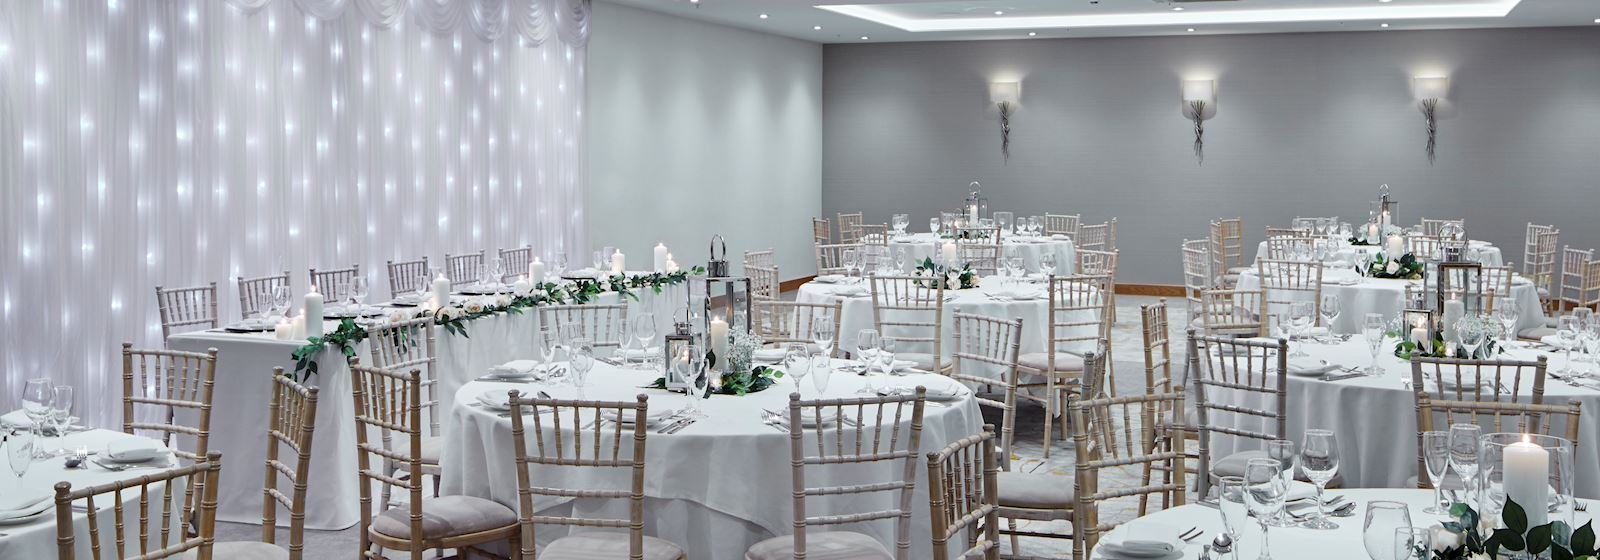 Cheshunt Marriott Hotel Weddings